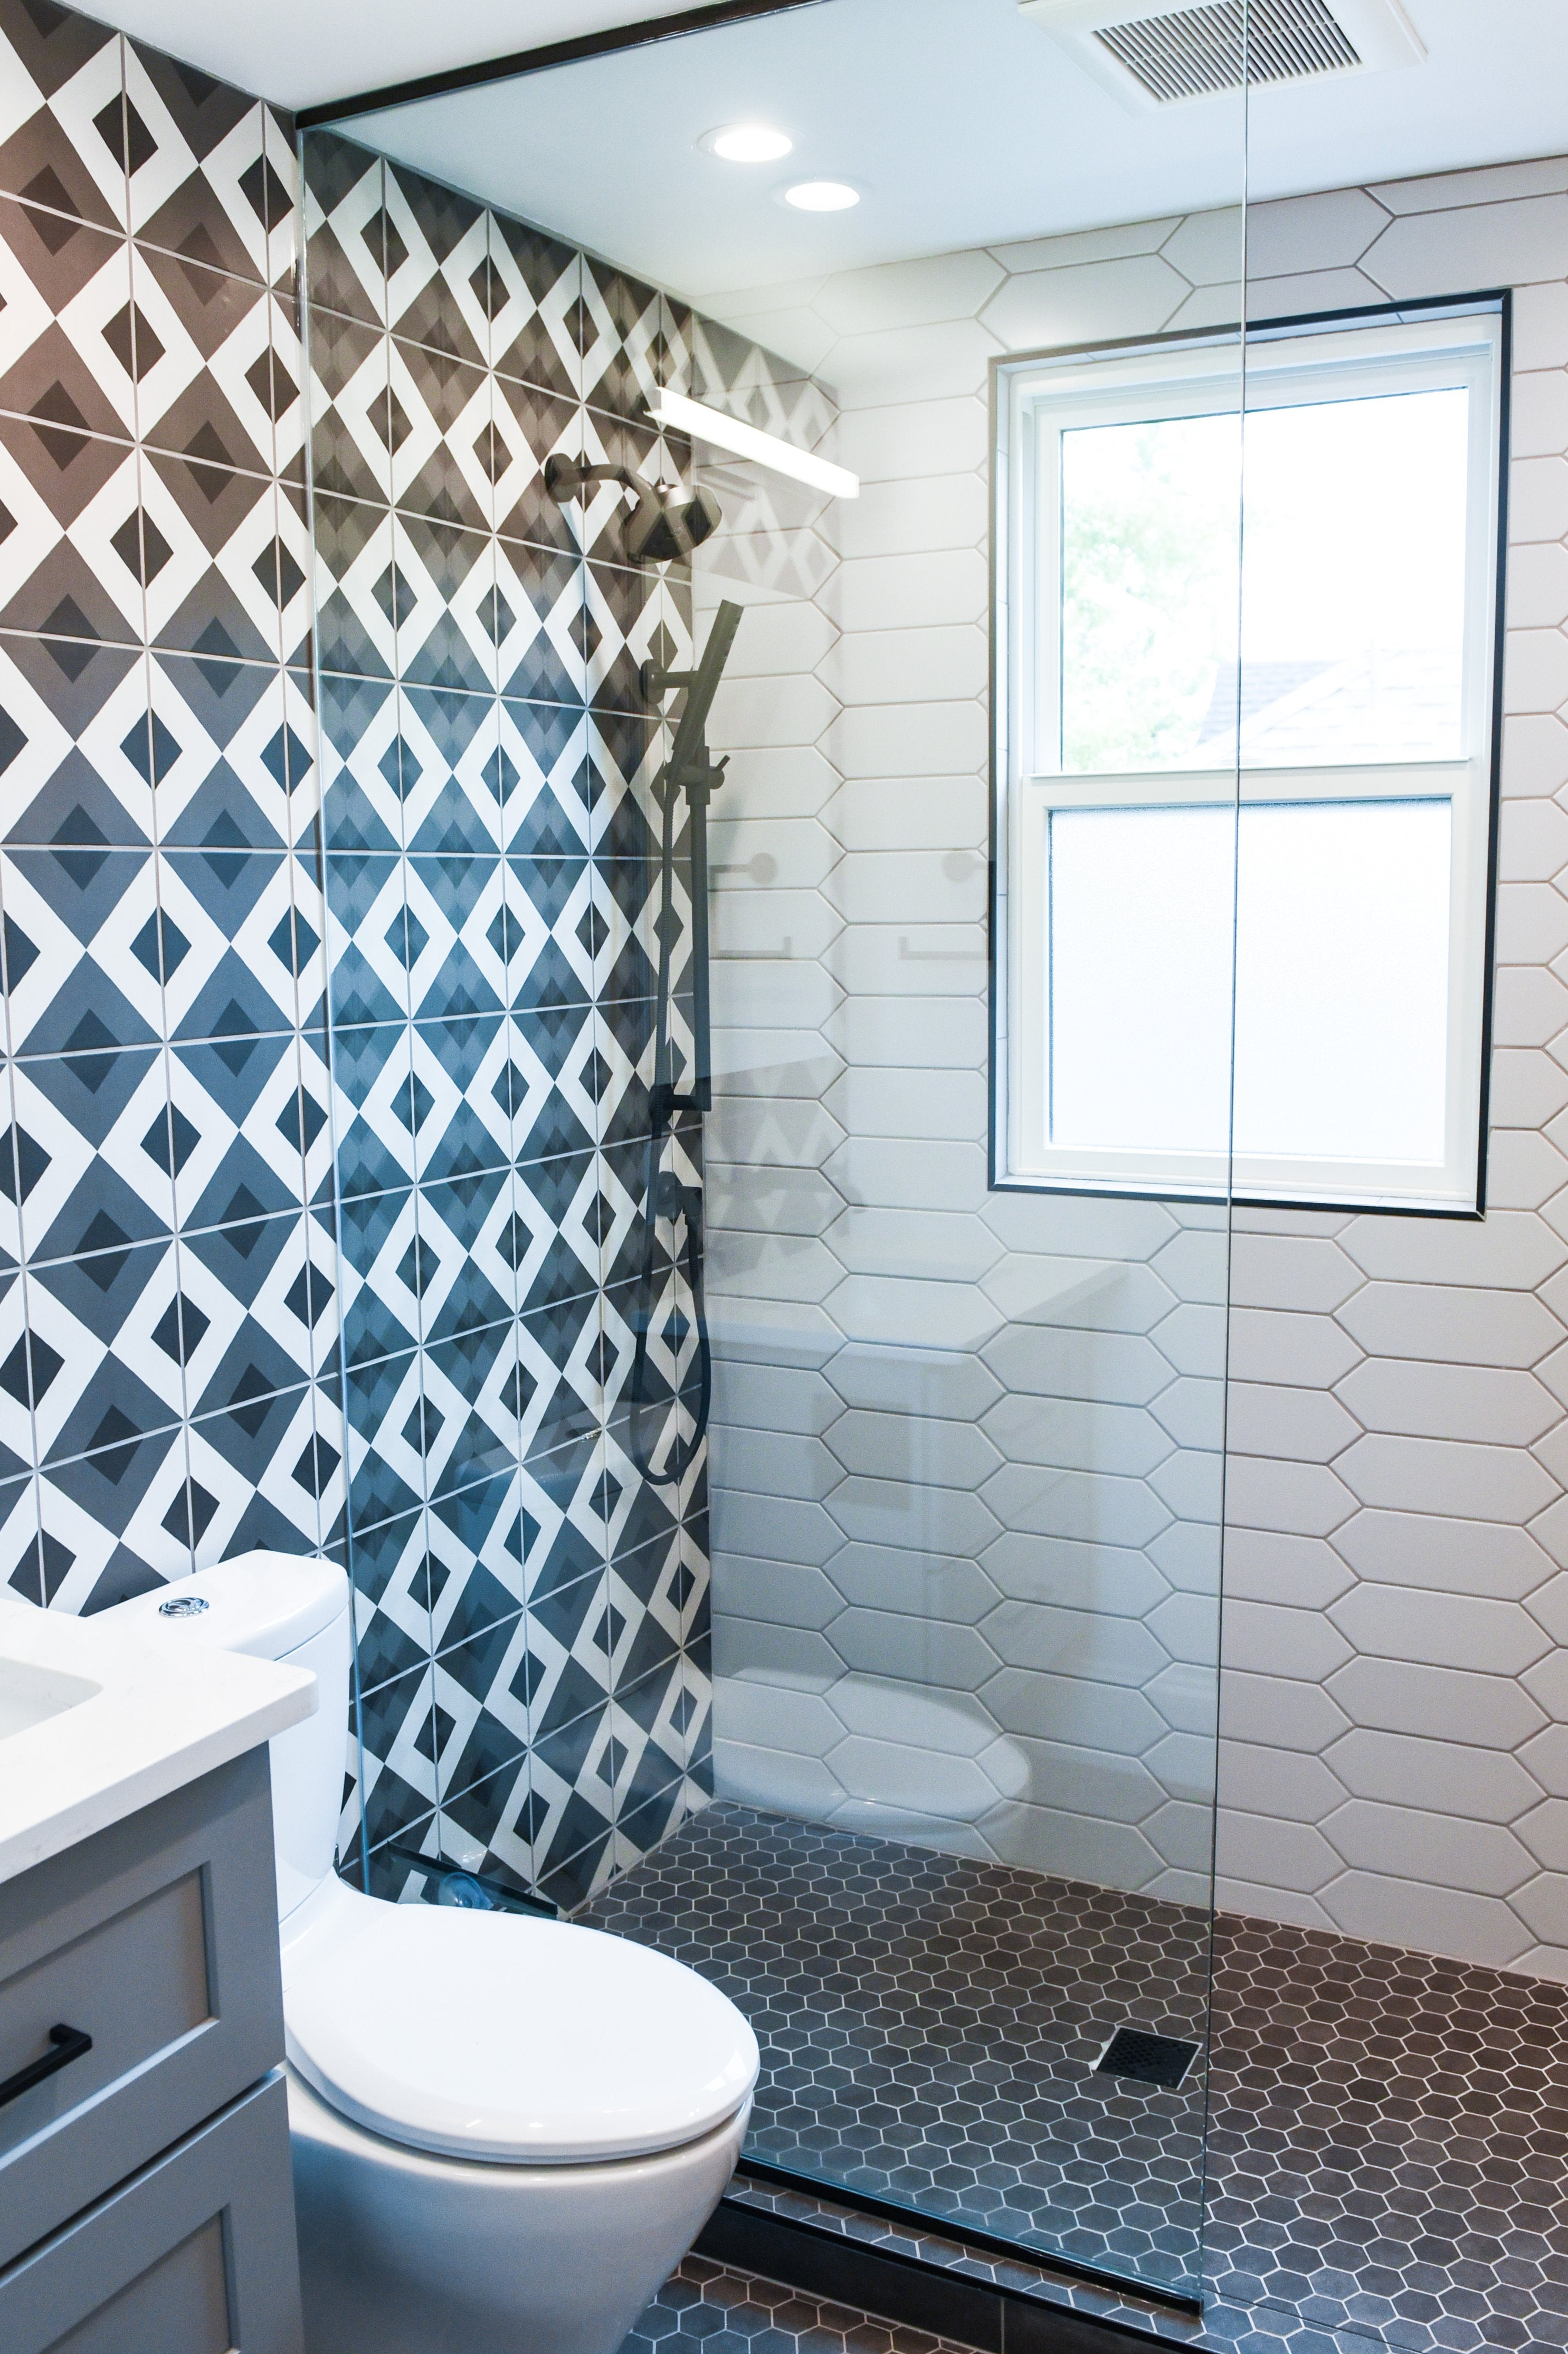 Funky Bathroom with Patterned Tile